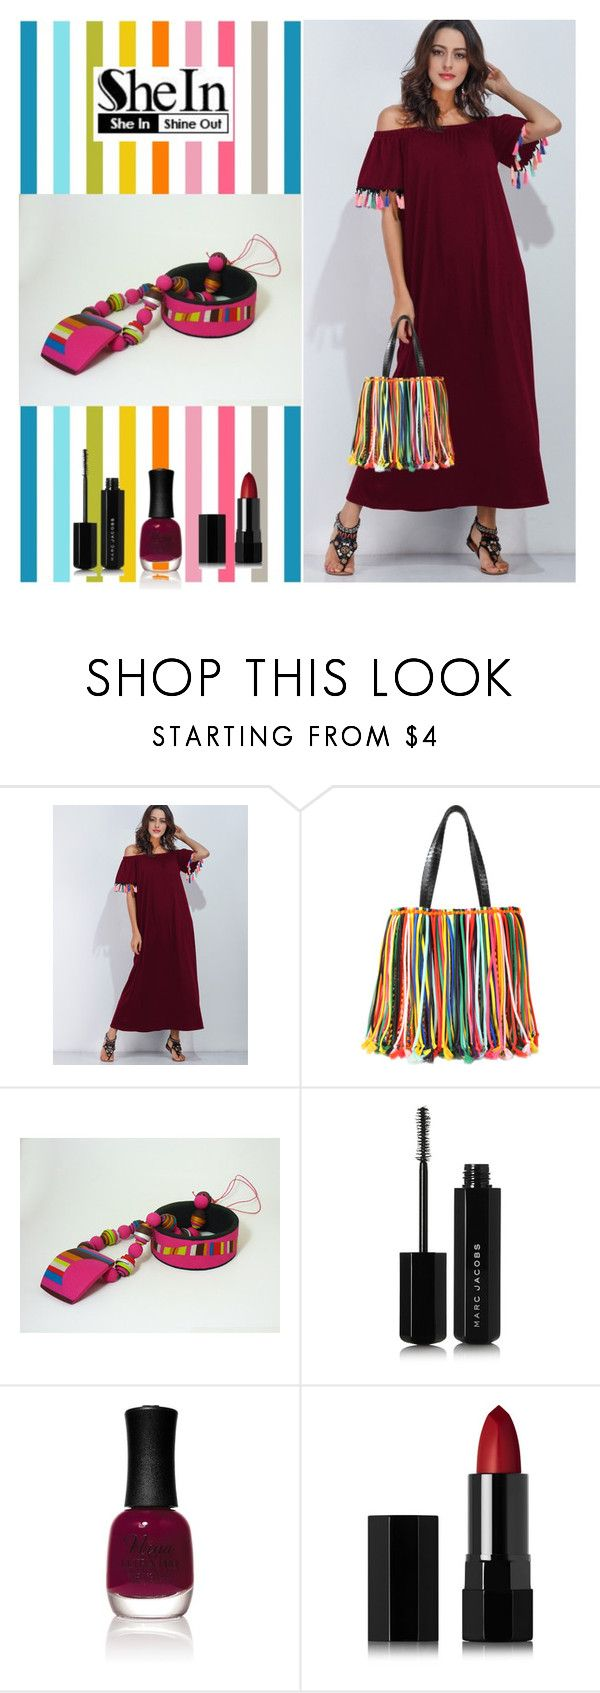 """""""WIN SHEIN $30 COUPON"""" by artstudiokatherine on Polyvore featuring Emilio Pucci, Marc Jacobs, Charlotte Russe and Serge Lutens"""